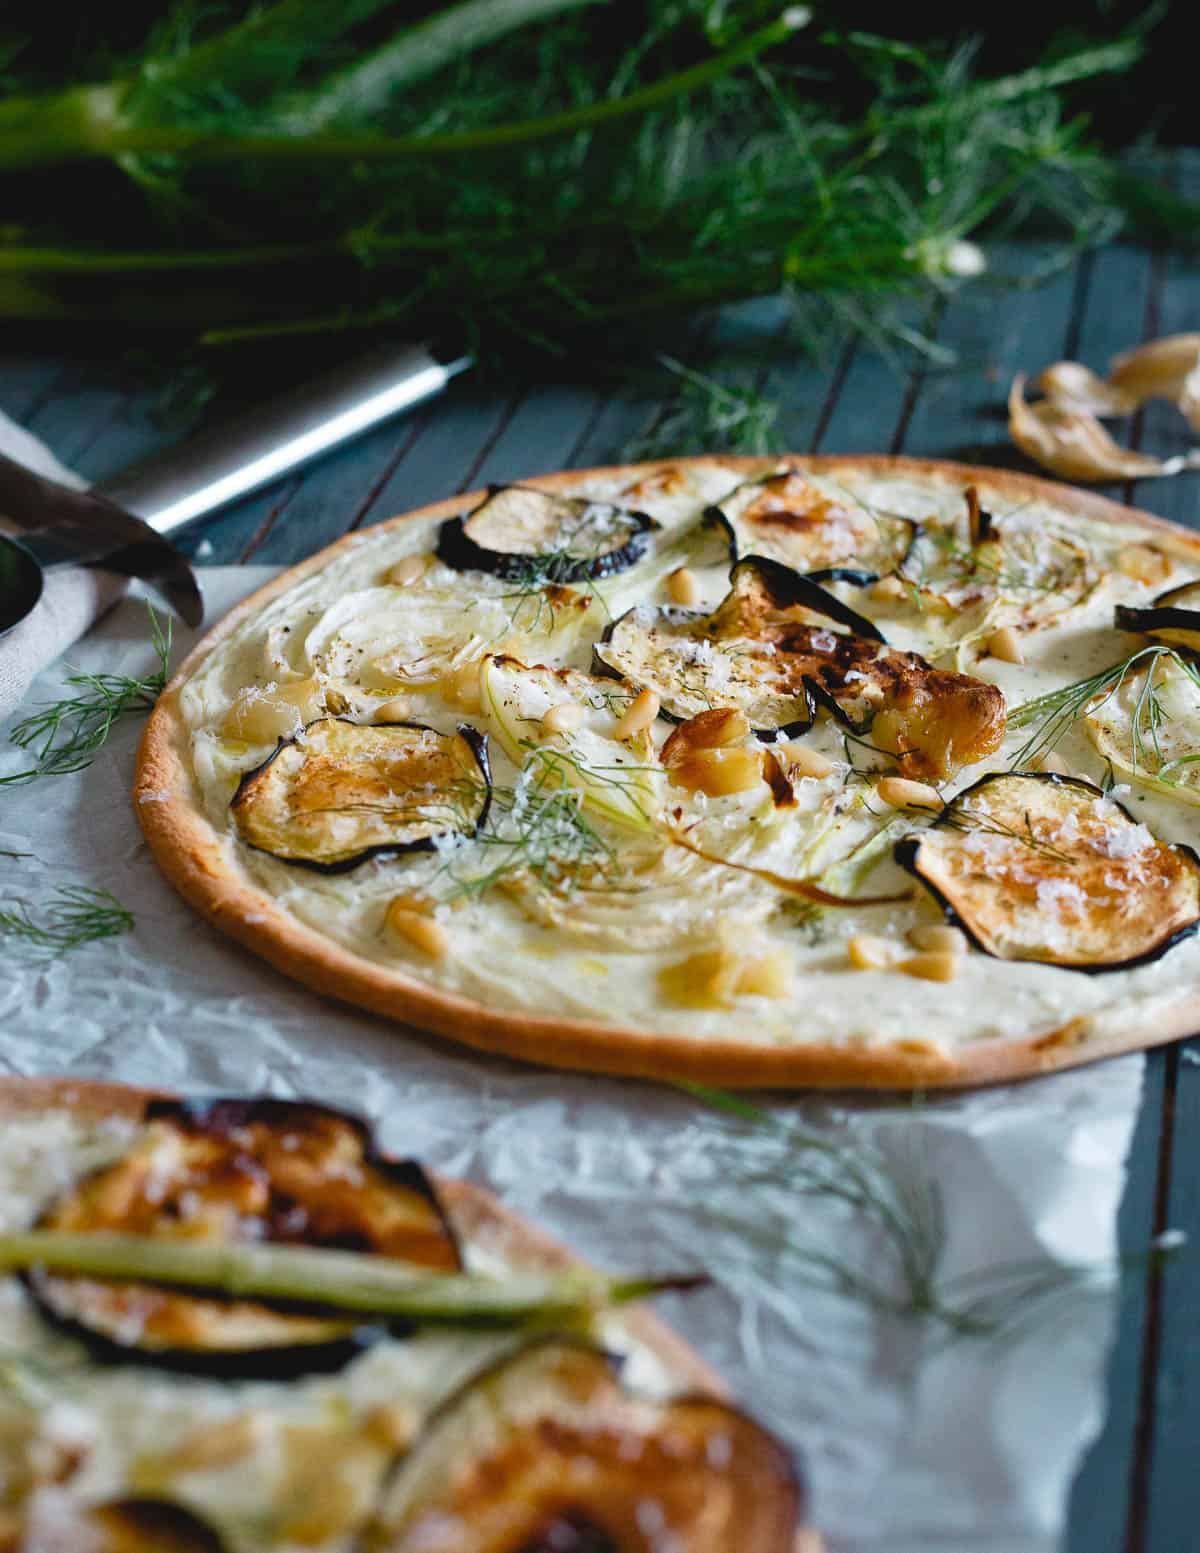 With a premade gluten-free crust, this roasted eggplant fennel pizza is an easy weeknight meal!